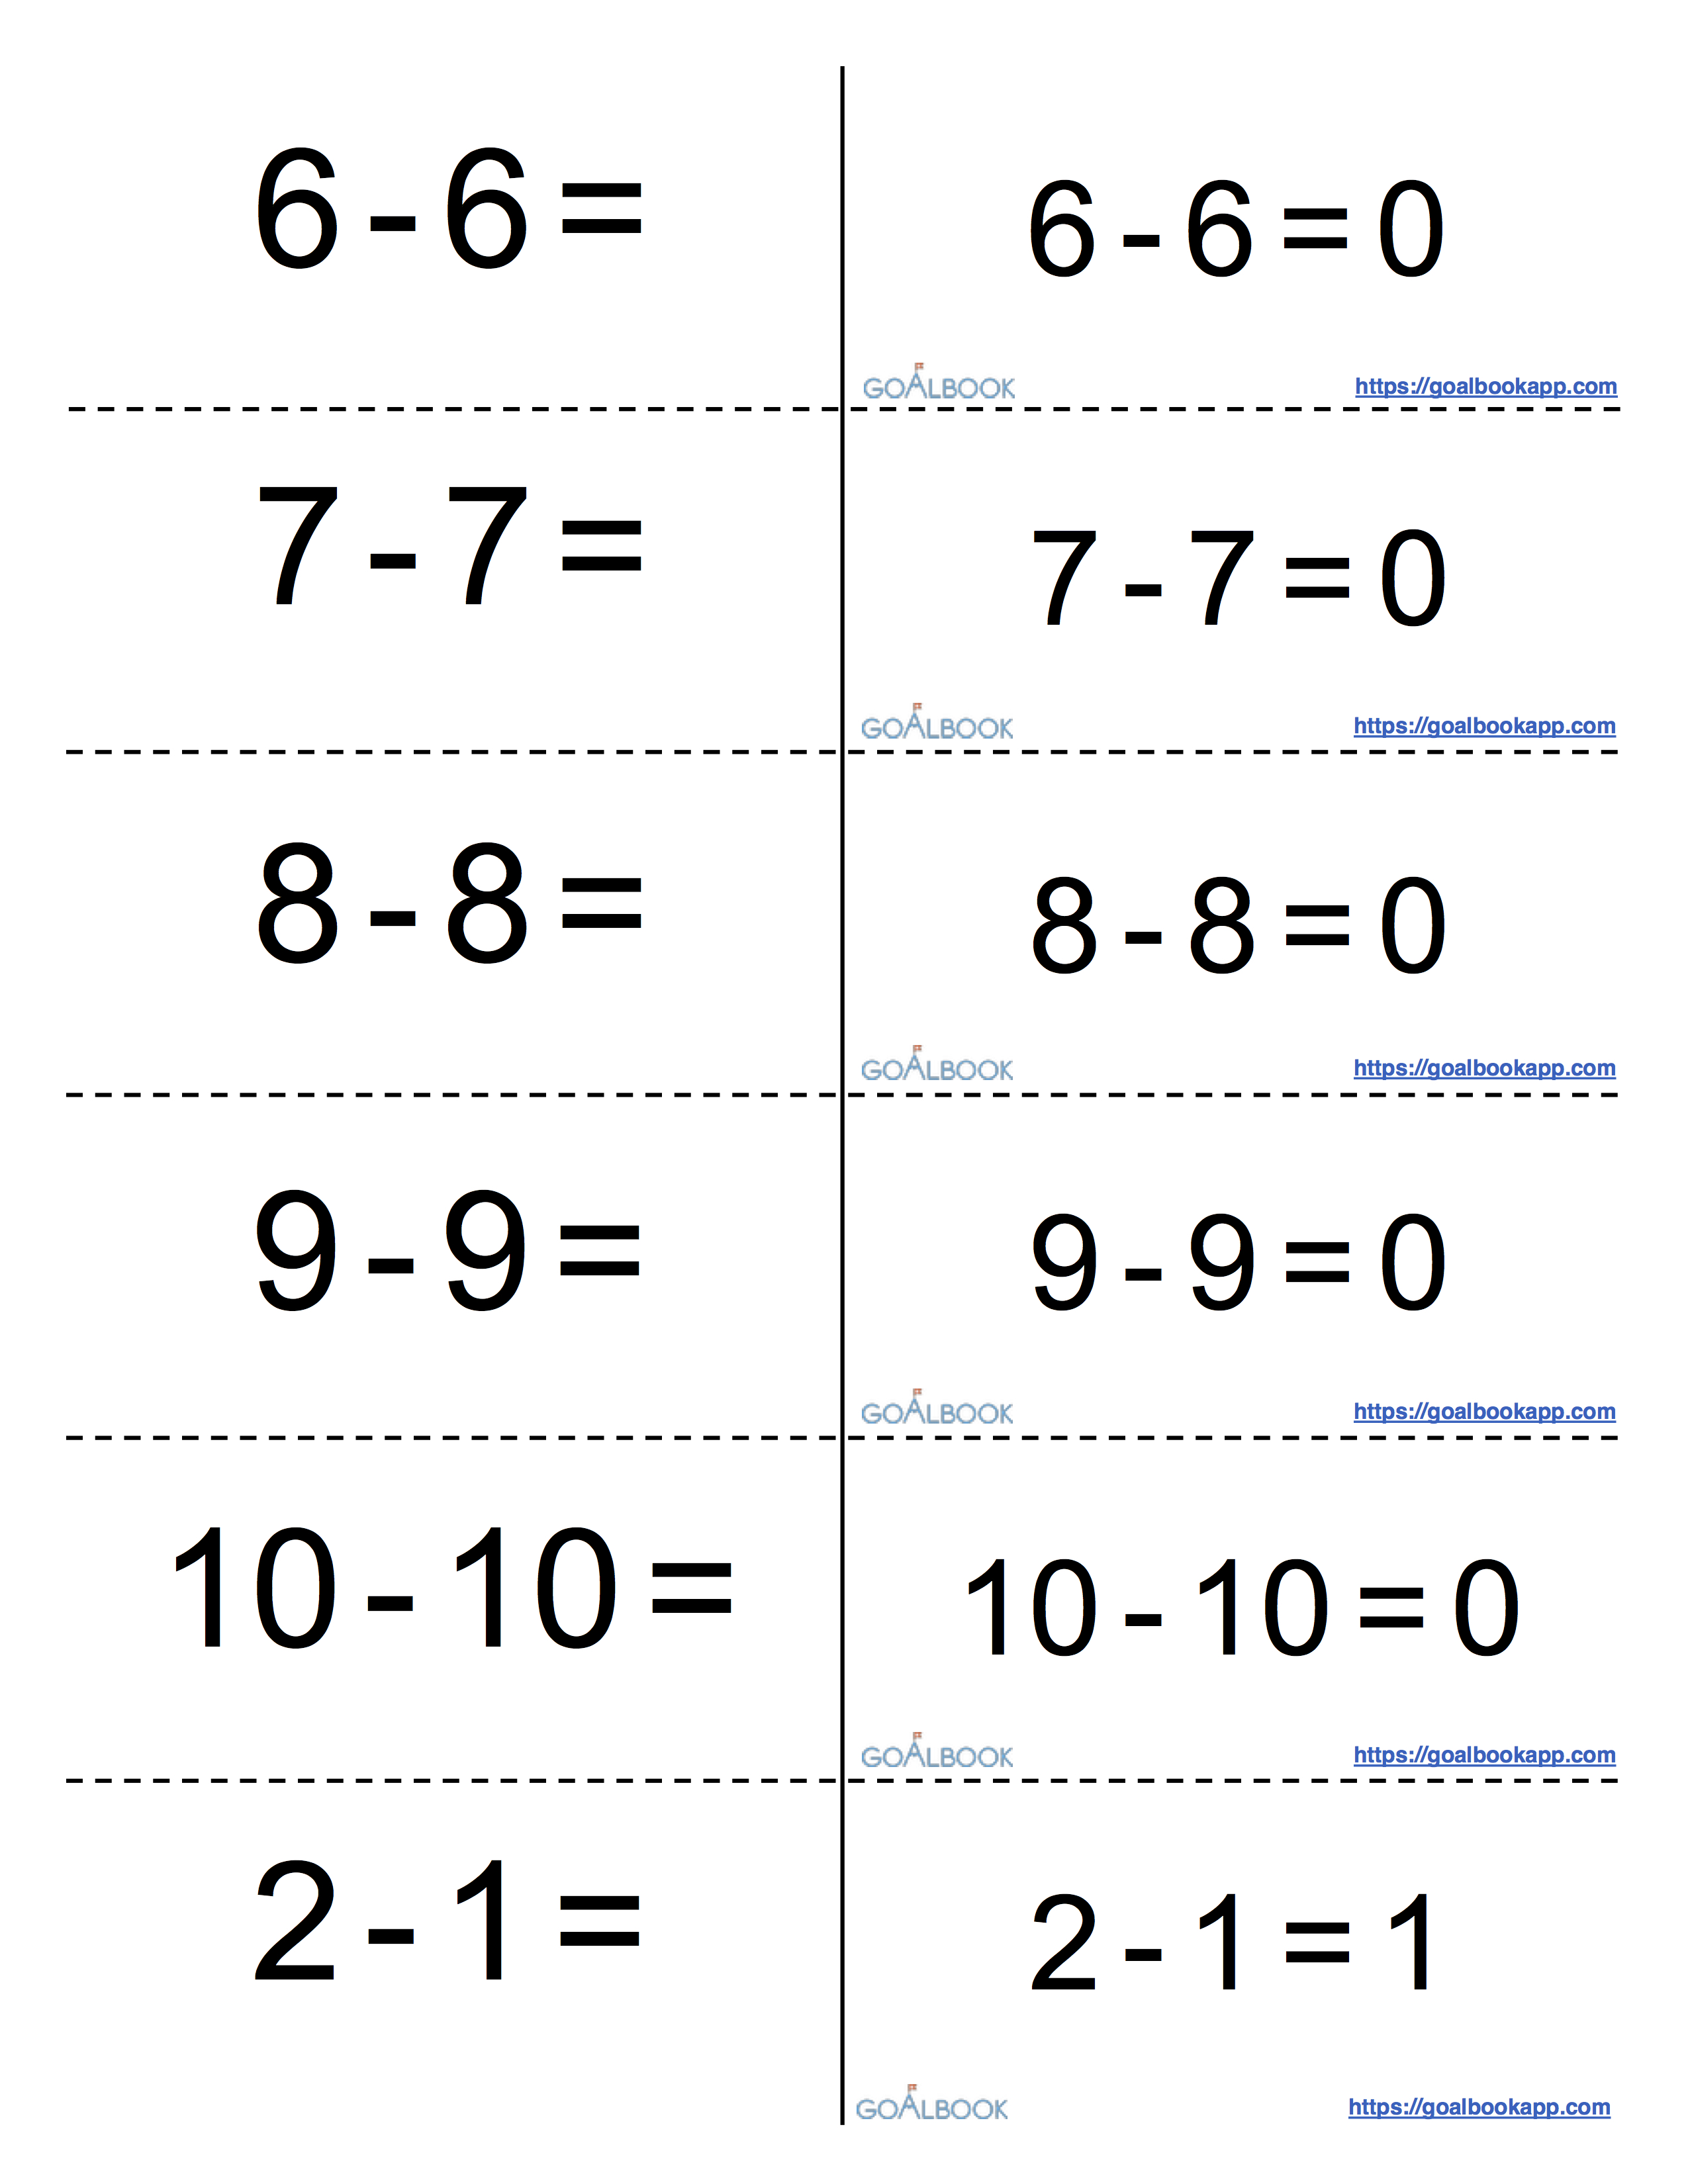 worksheet Subtraction Flash Cards 1 oa 7 addition and subtraction equations math operations full resource contains